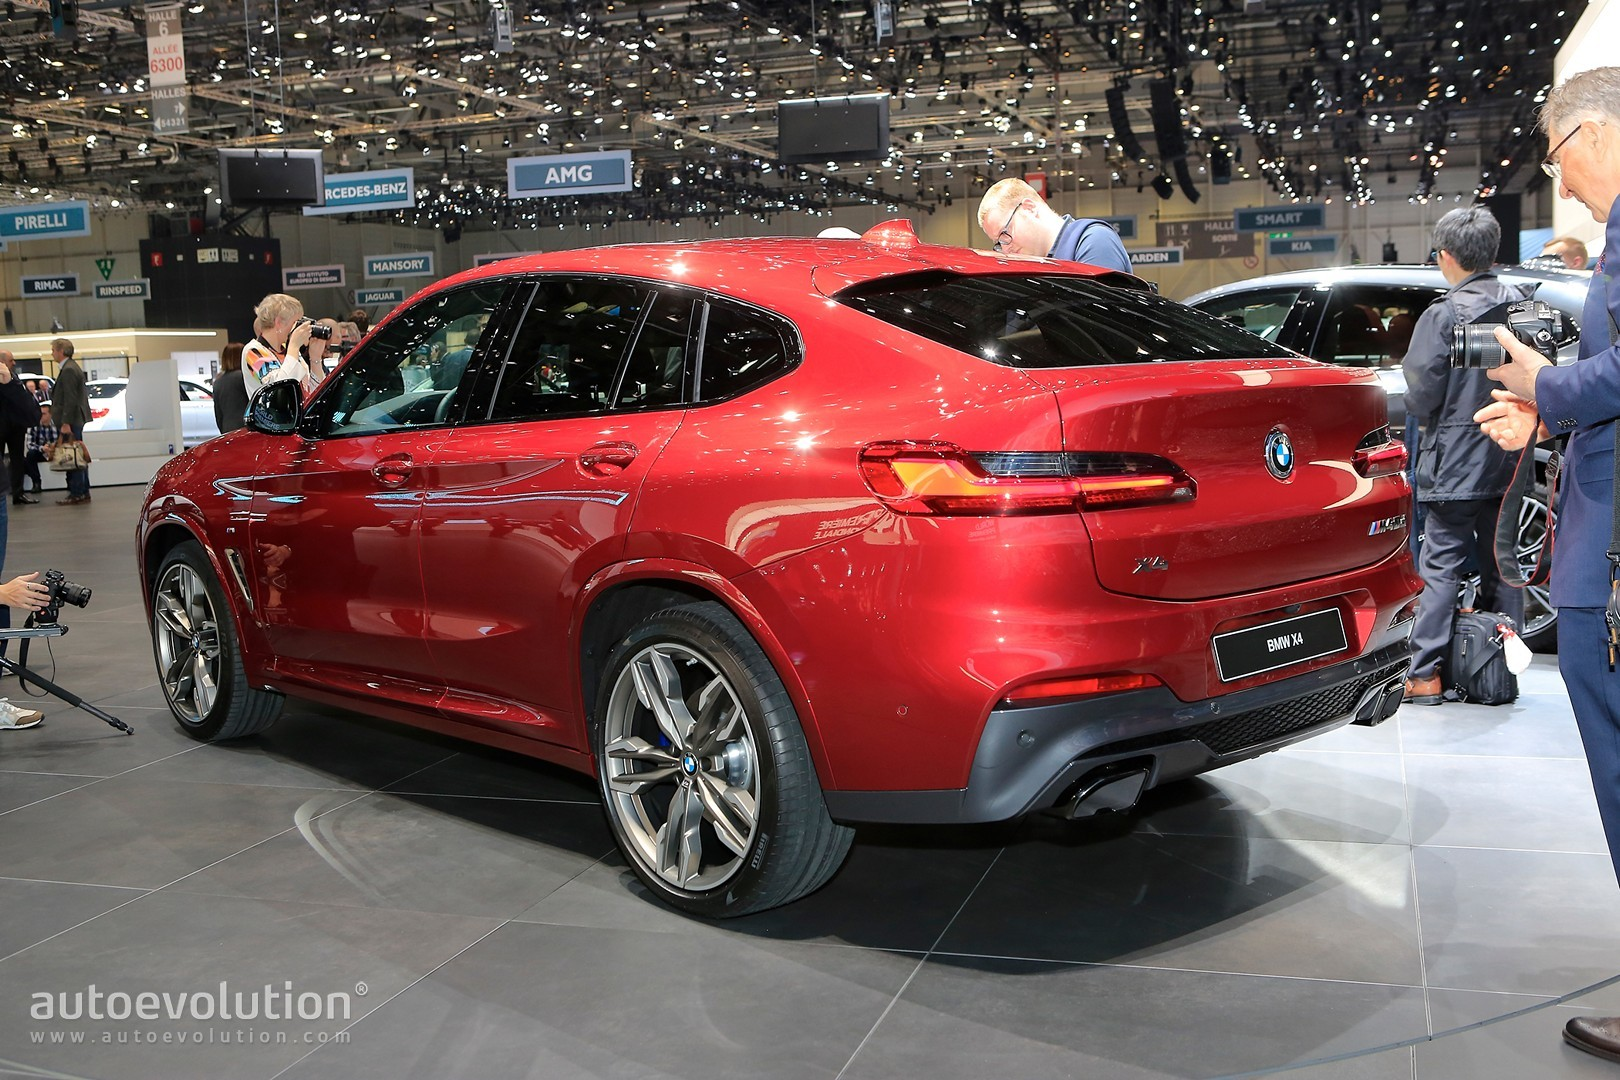 2019 BMW X4 Looks All New In Geneva But Is It Hot Than The